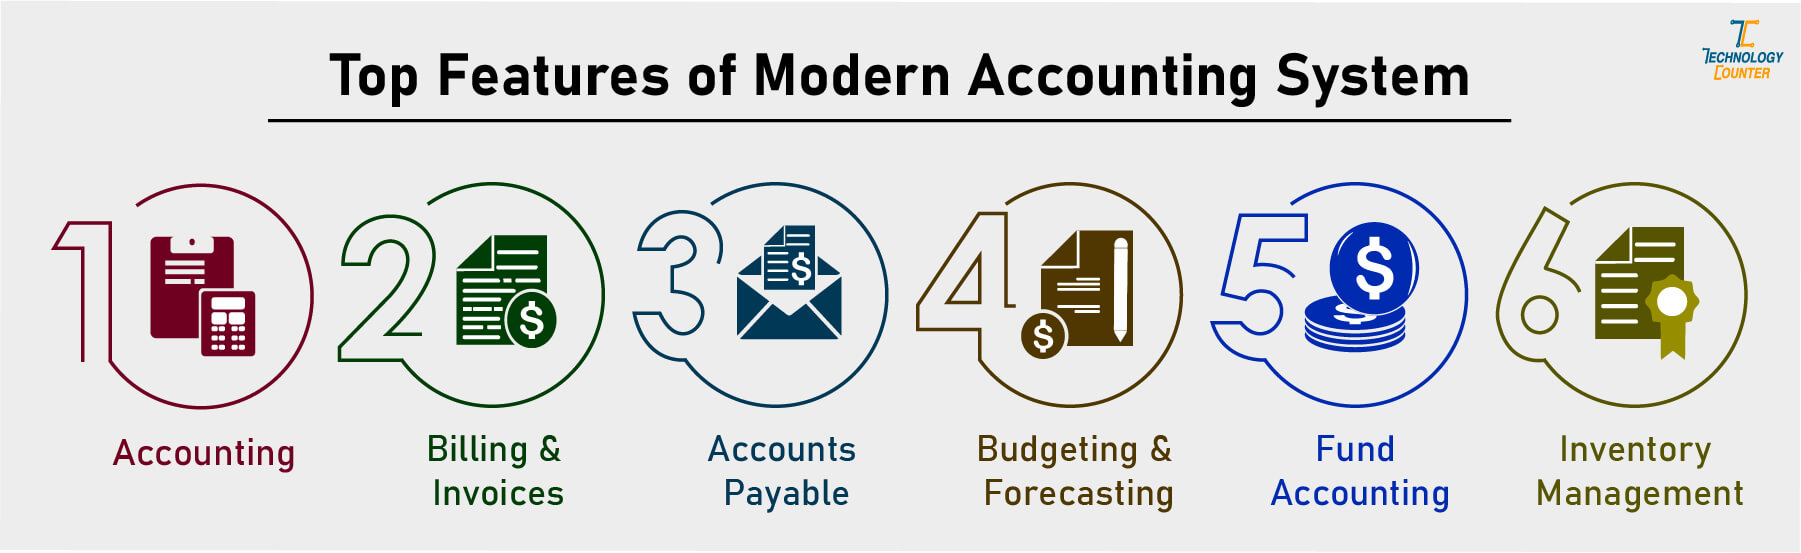 Top features of modern accounting system